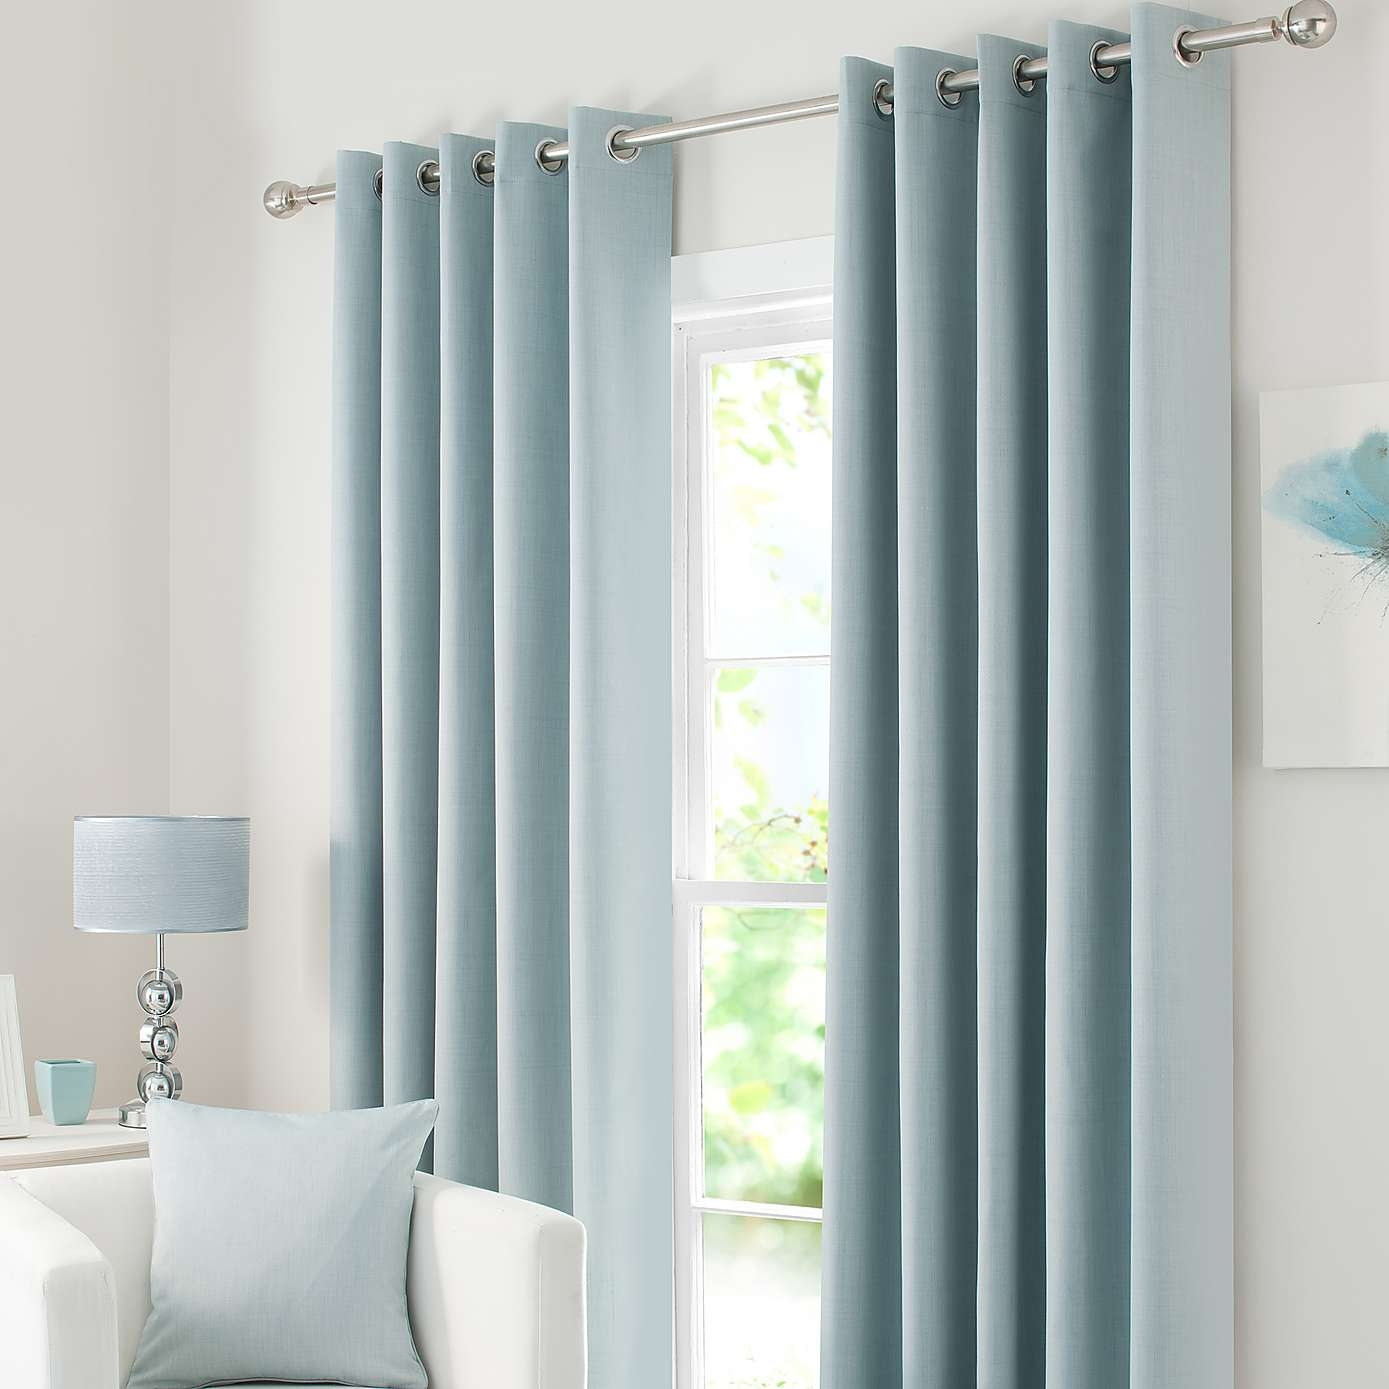 Duck Egg Solar Blackout Eyelet Curtains Dunelm Master Suite Throughout Blue Blackout Curtains Eyelet (Image 6 of 15)